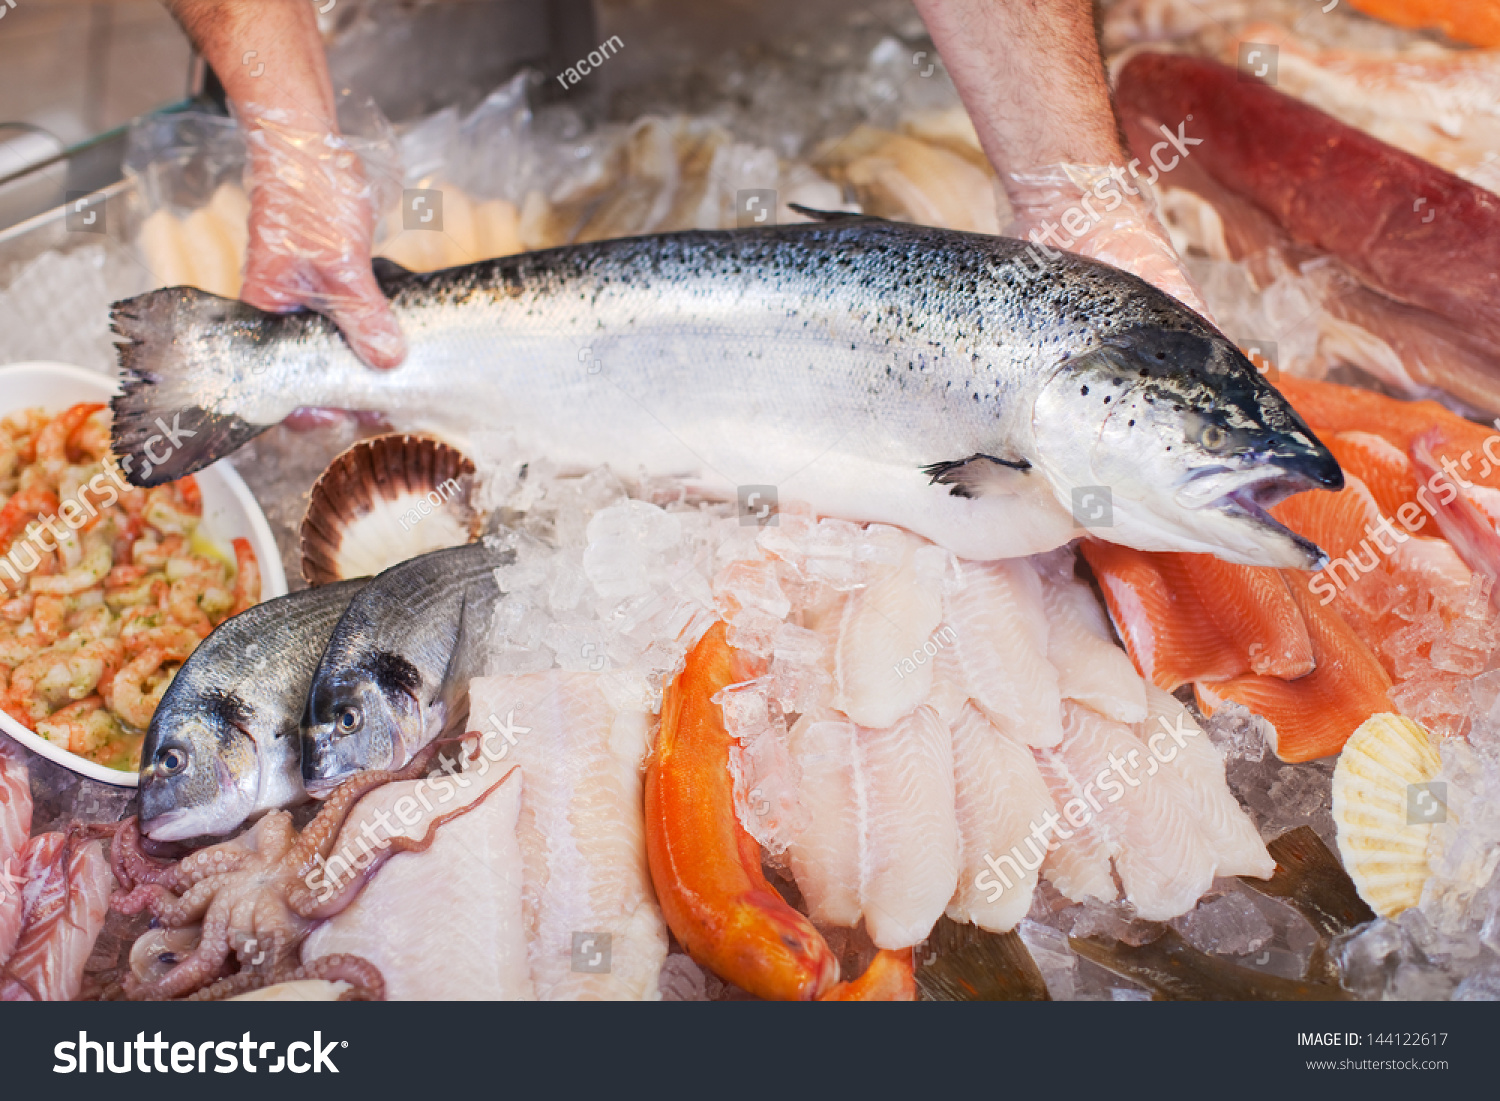 Closeup male workers hands keeping fish stock photo for Keeping fish